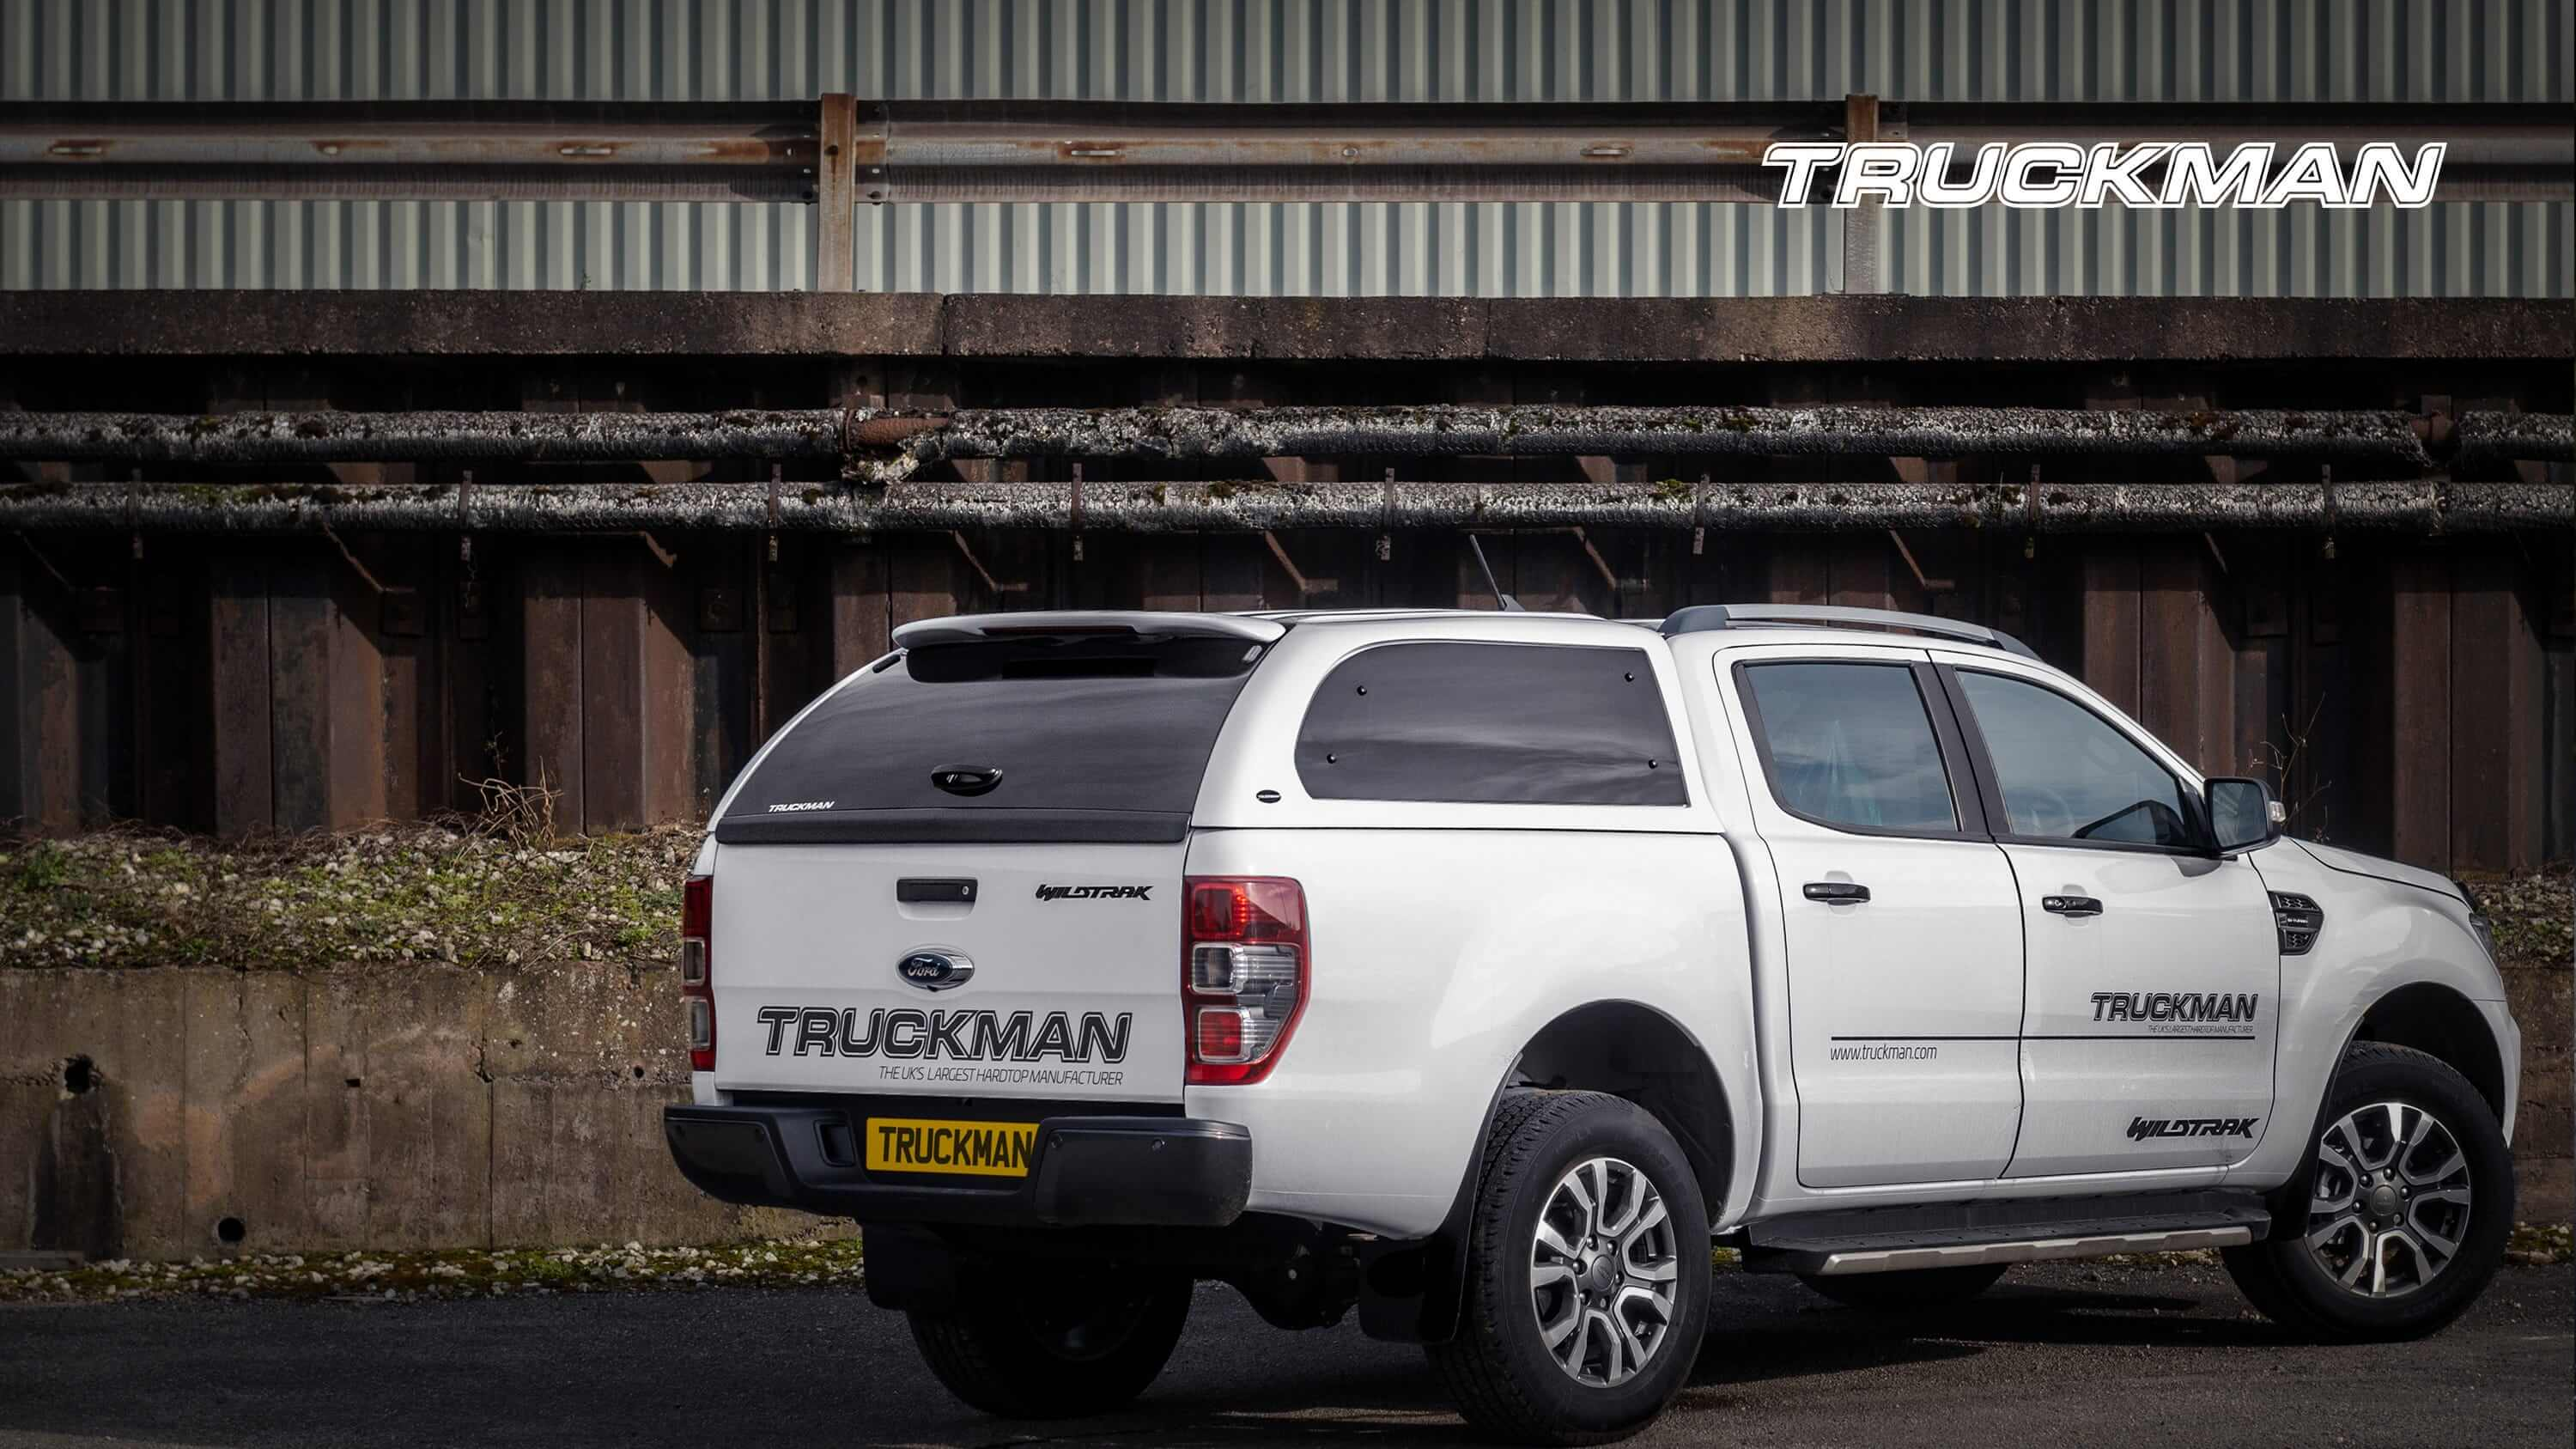 Ford Ranger Double Cab Fitted With a Truckman Grand Hardtop Canopy (Landscape)